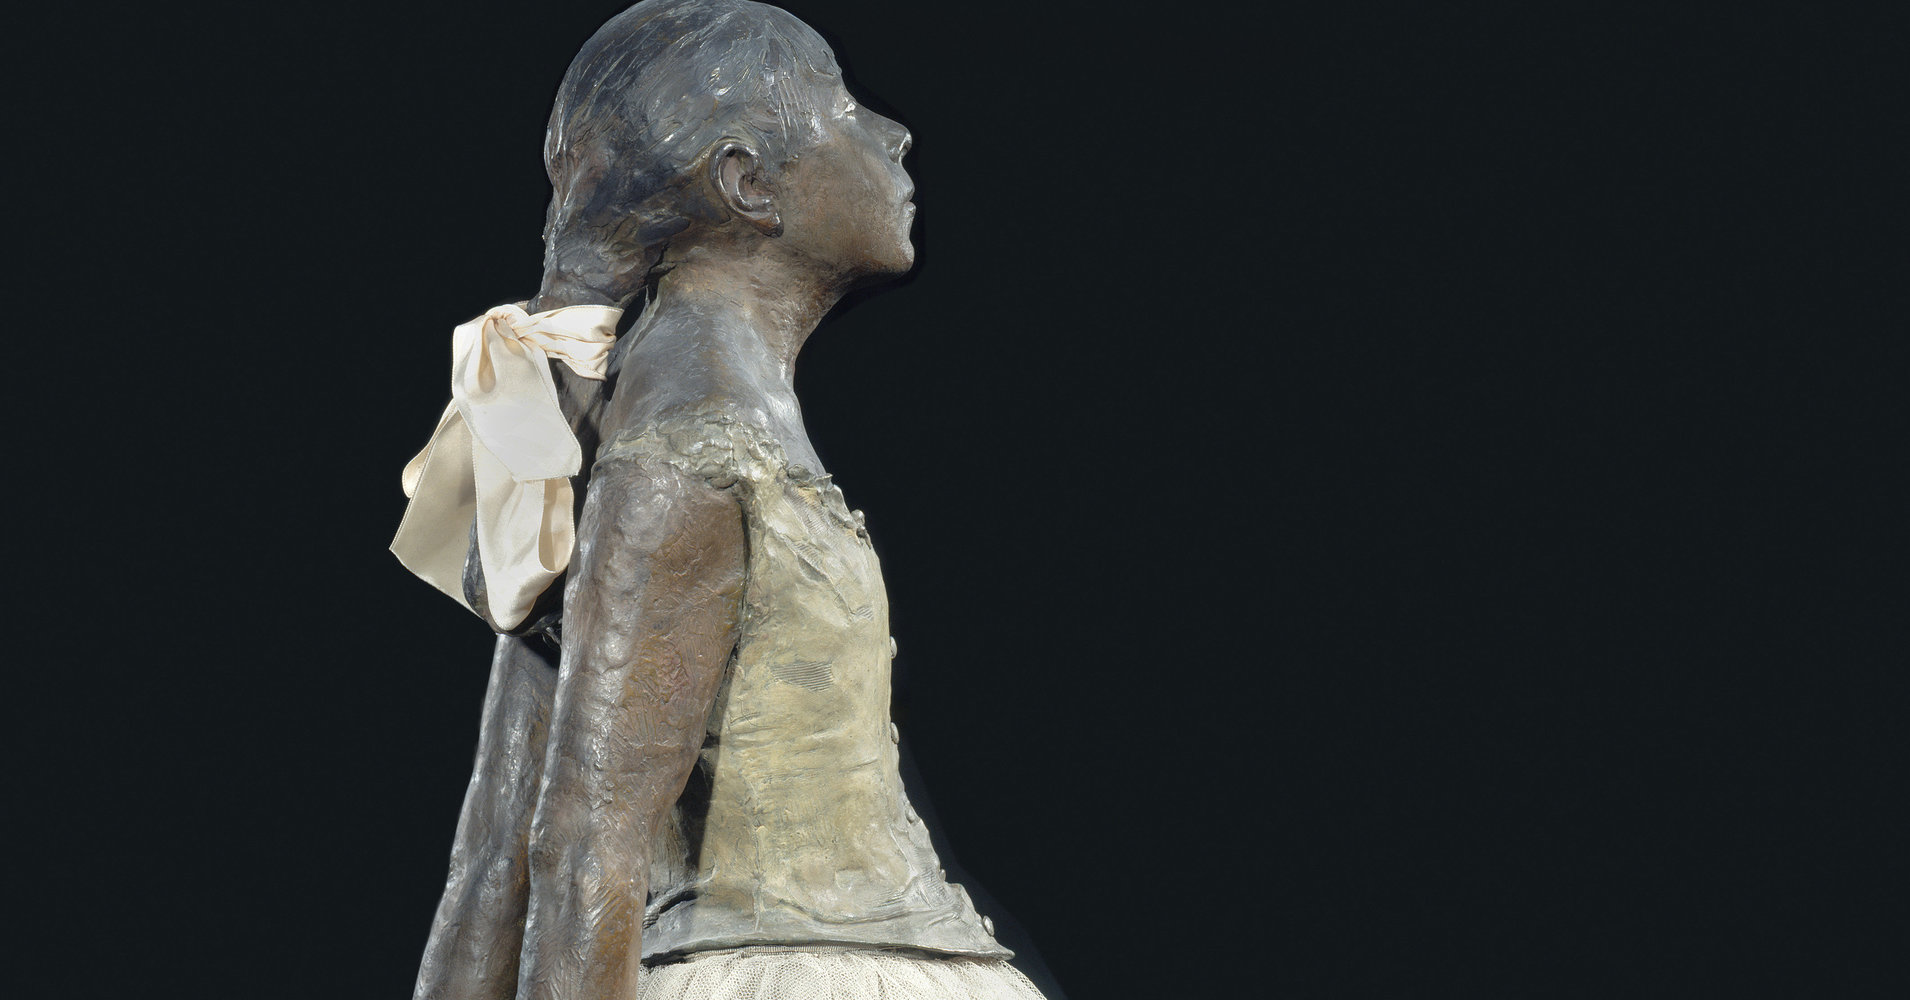 The Story Behind Degas' 'Little Dancer' Is Disturbing, But Not In The Way You Expect